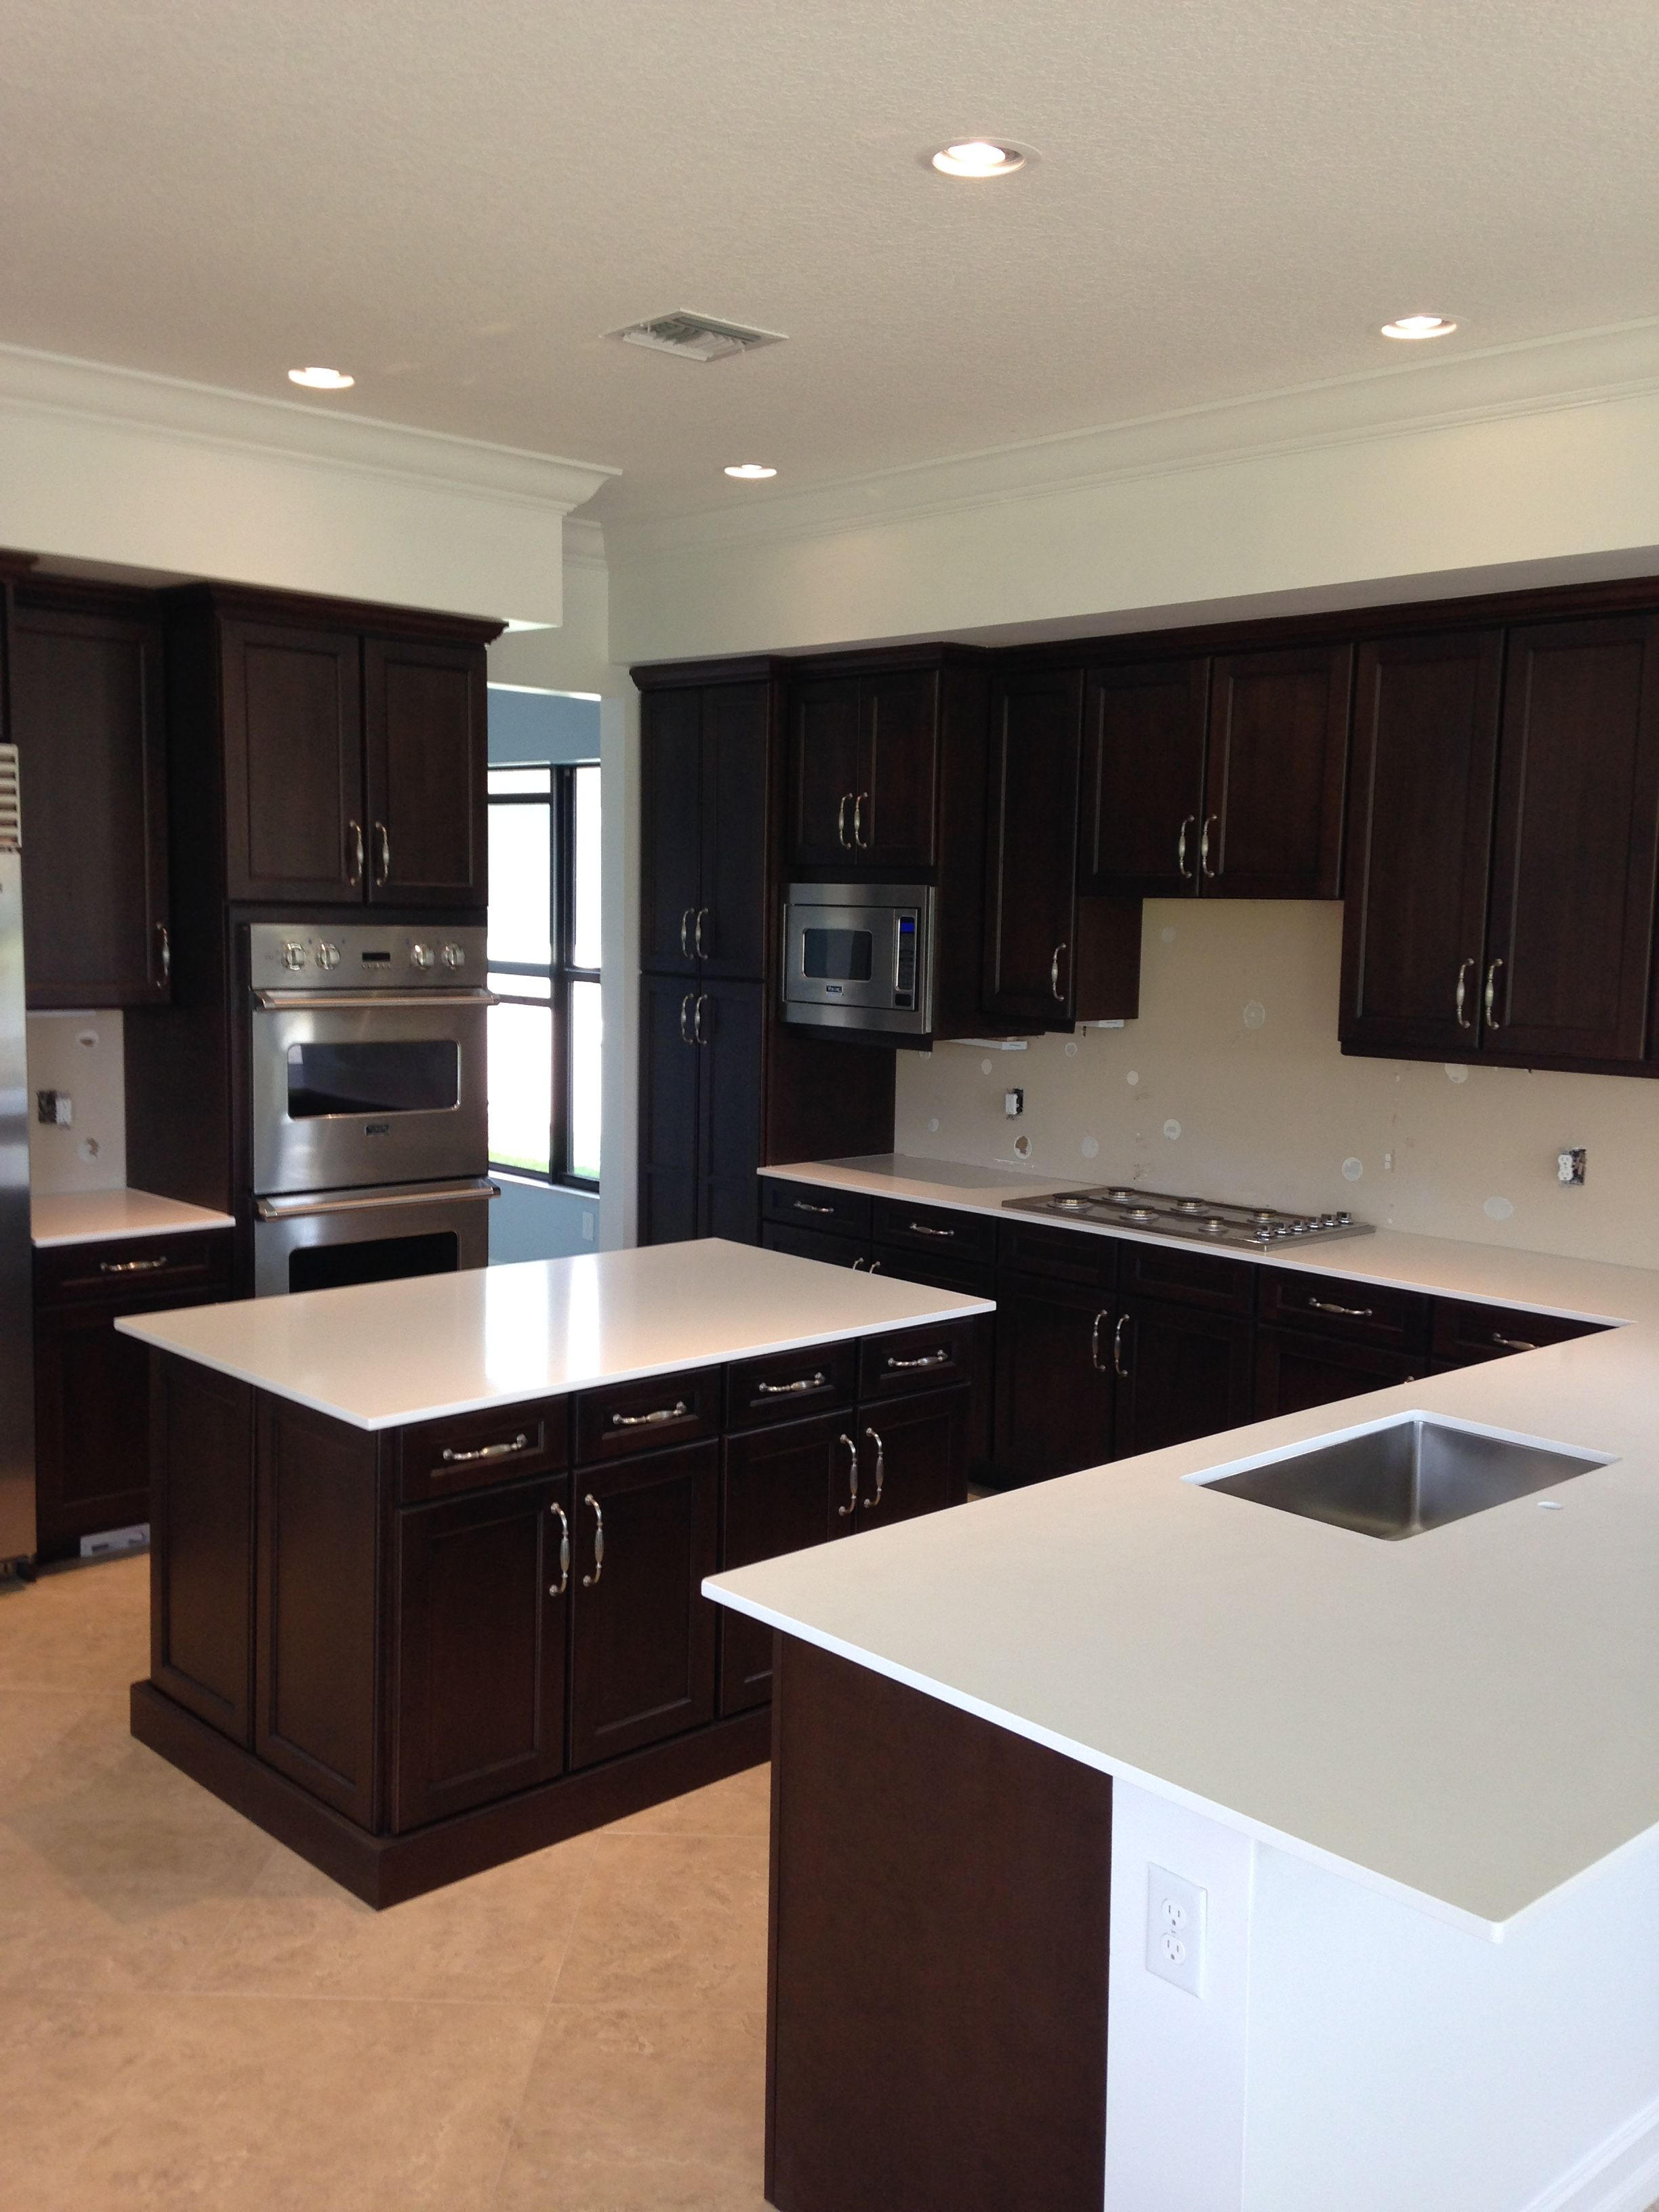 White Quartz Countertops And Brown Dark Cabinets Http Www Stoneandquartzsurfaces Com Qu Dark Brown Kitchen Cabinets Brown Kitchen Cabinets Brown Kitchens